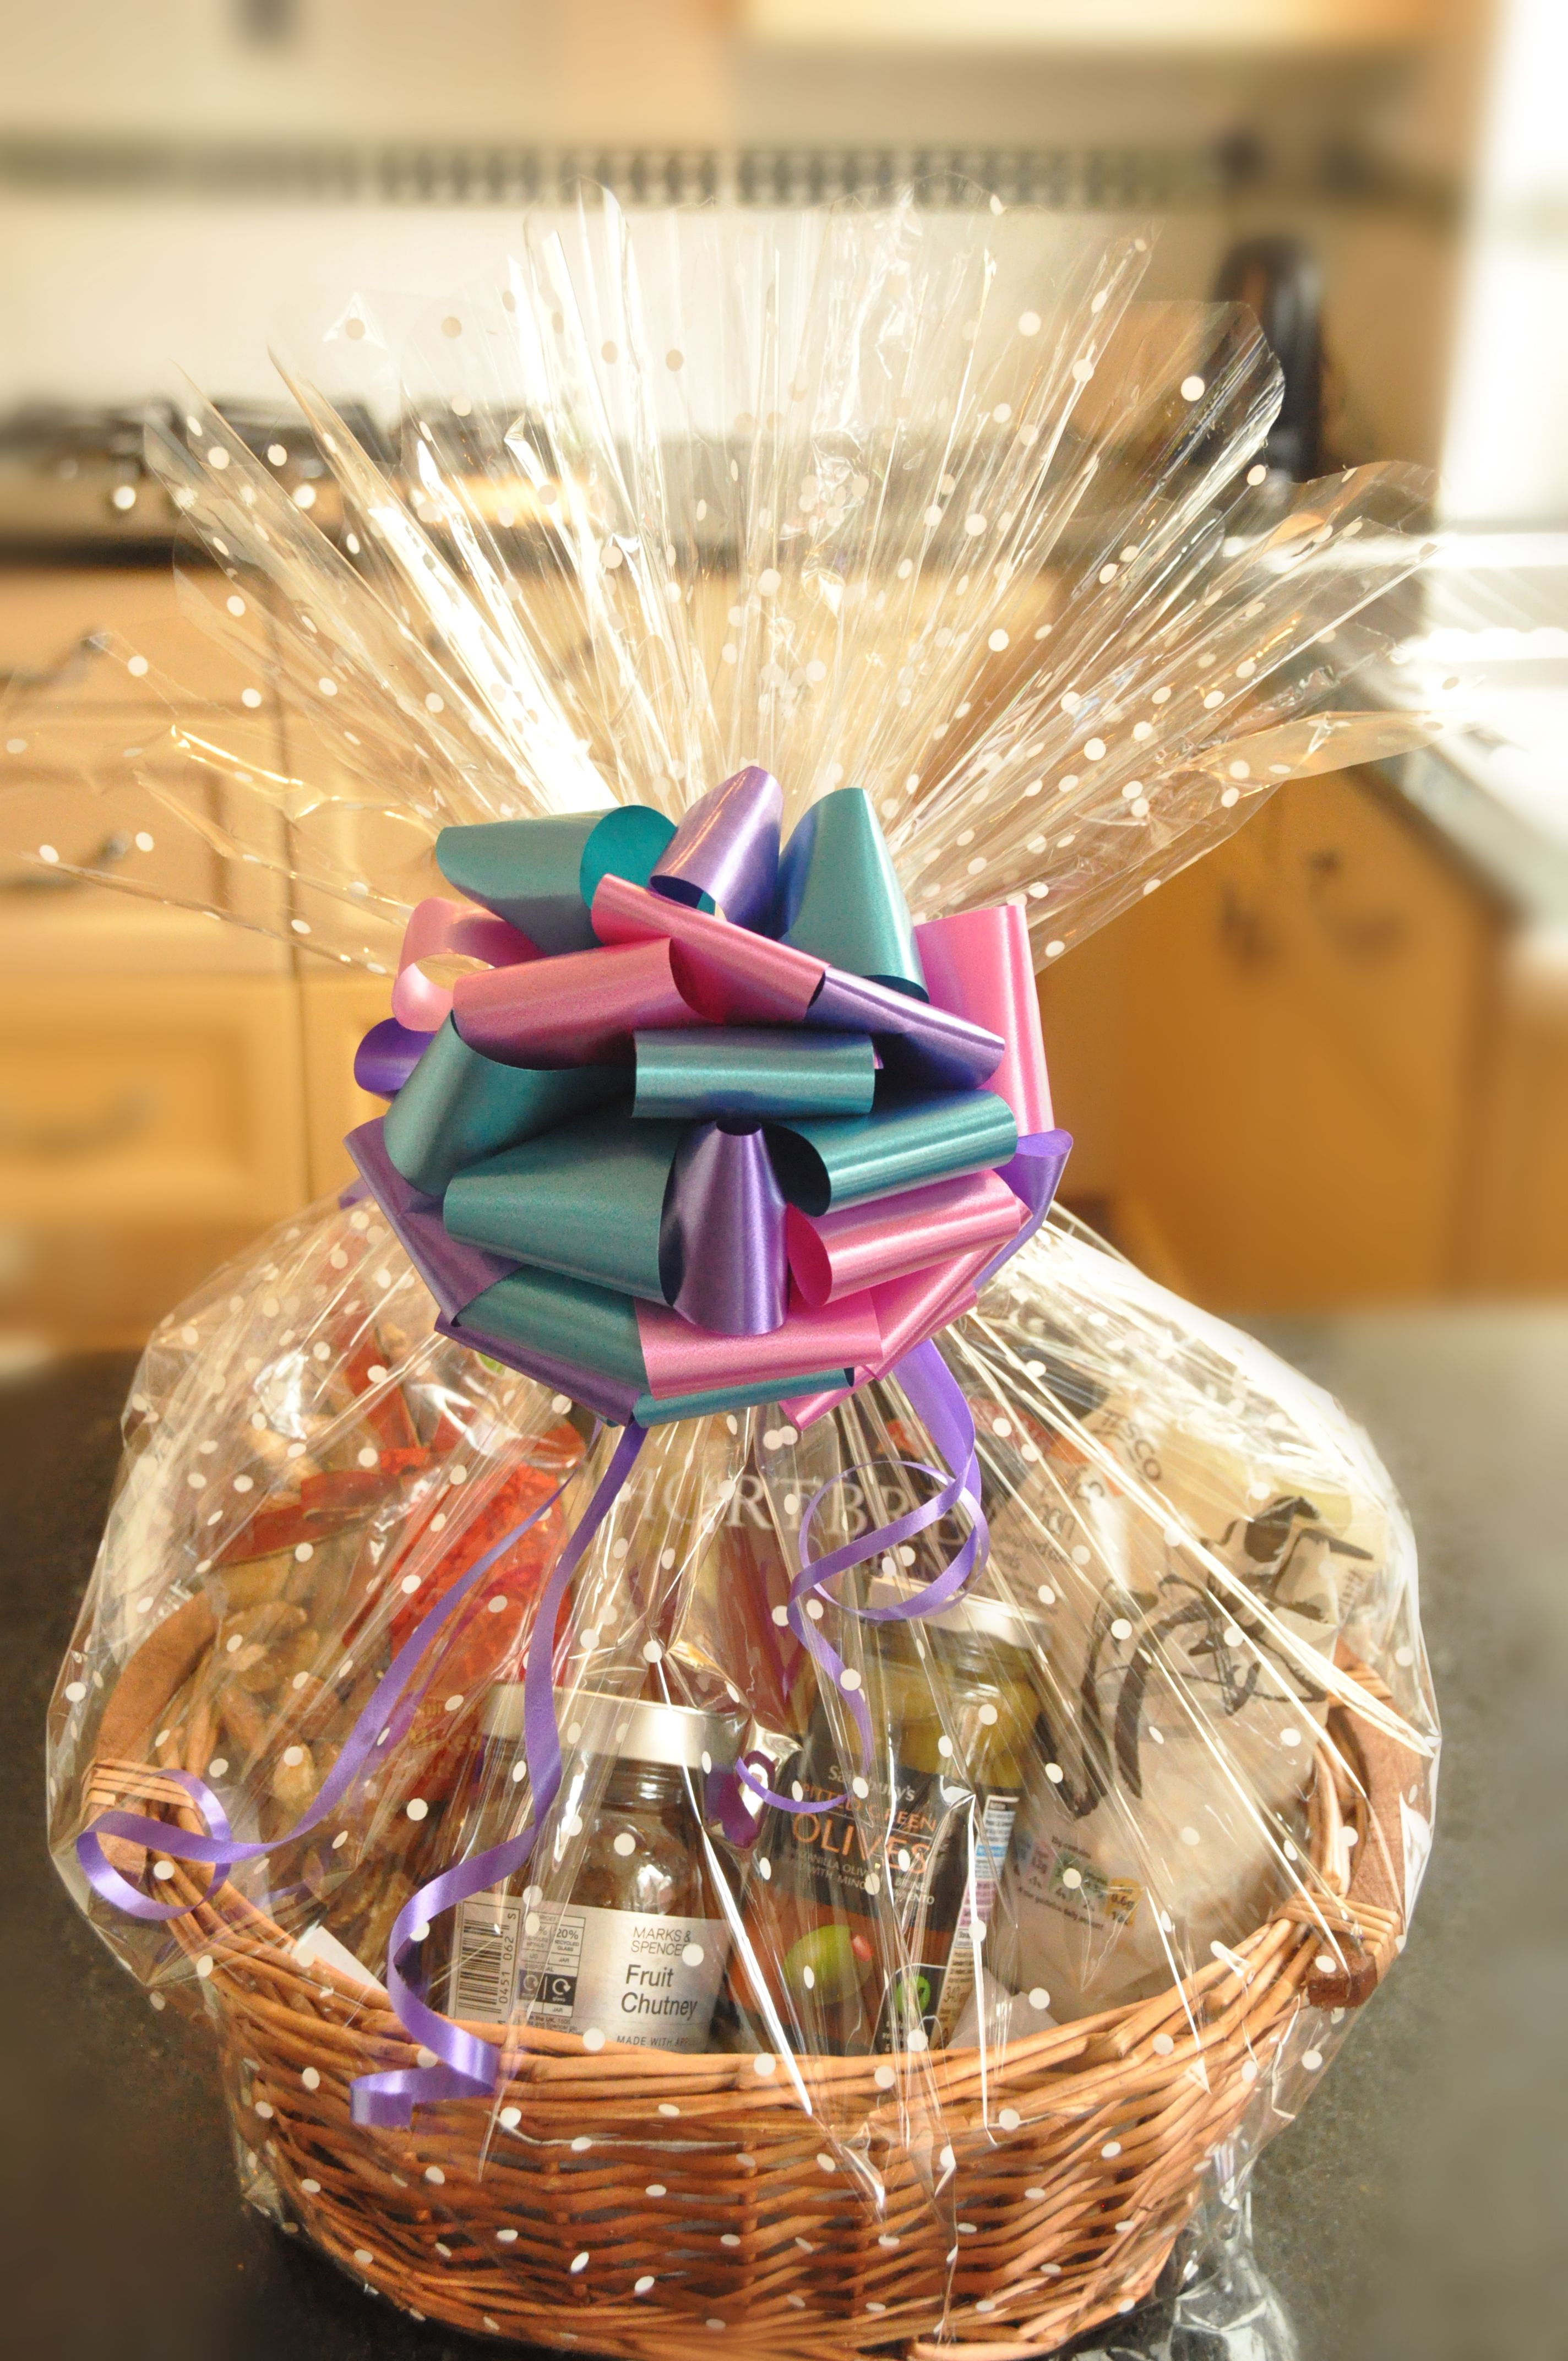 Gift Basket Wrapping Ideas Hampers Gift Baskets Create Your Own Luxury Baskets With Our